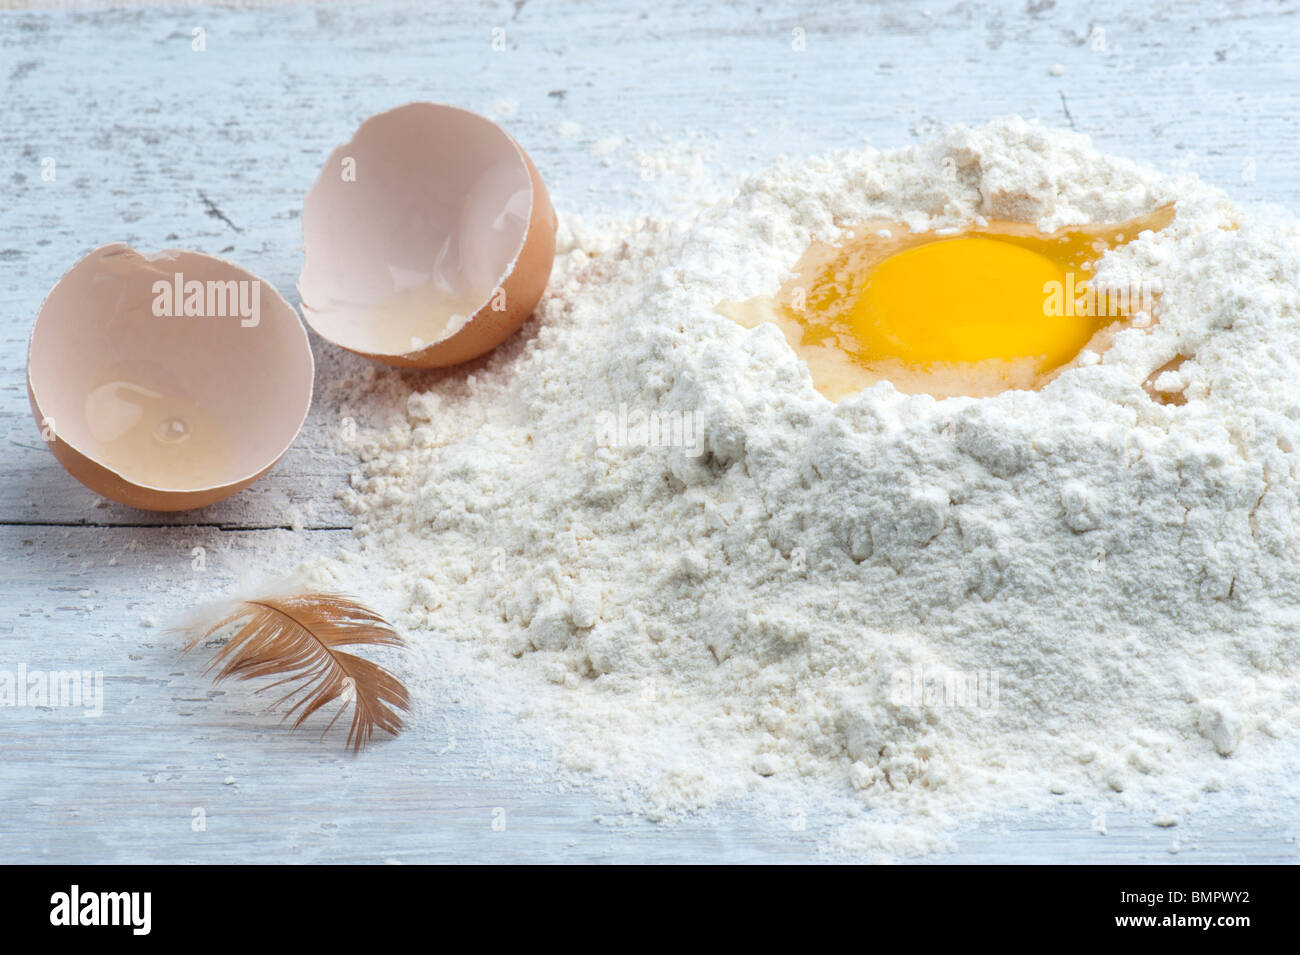 A Cracked Egg In Some Flour, With The Shell and A Hen Feather To The Side - Stock Image